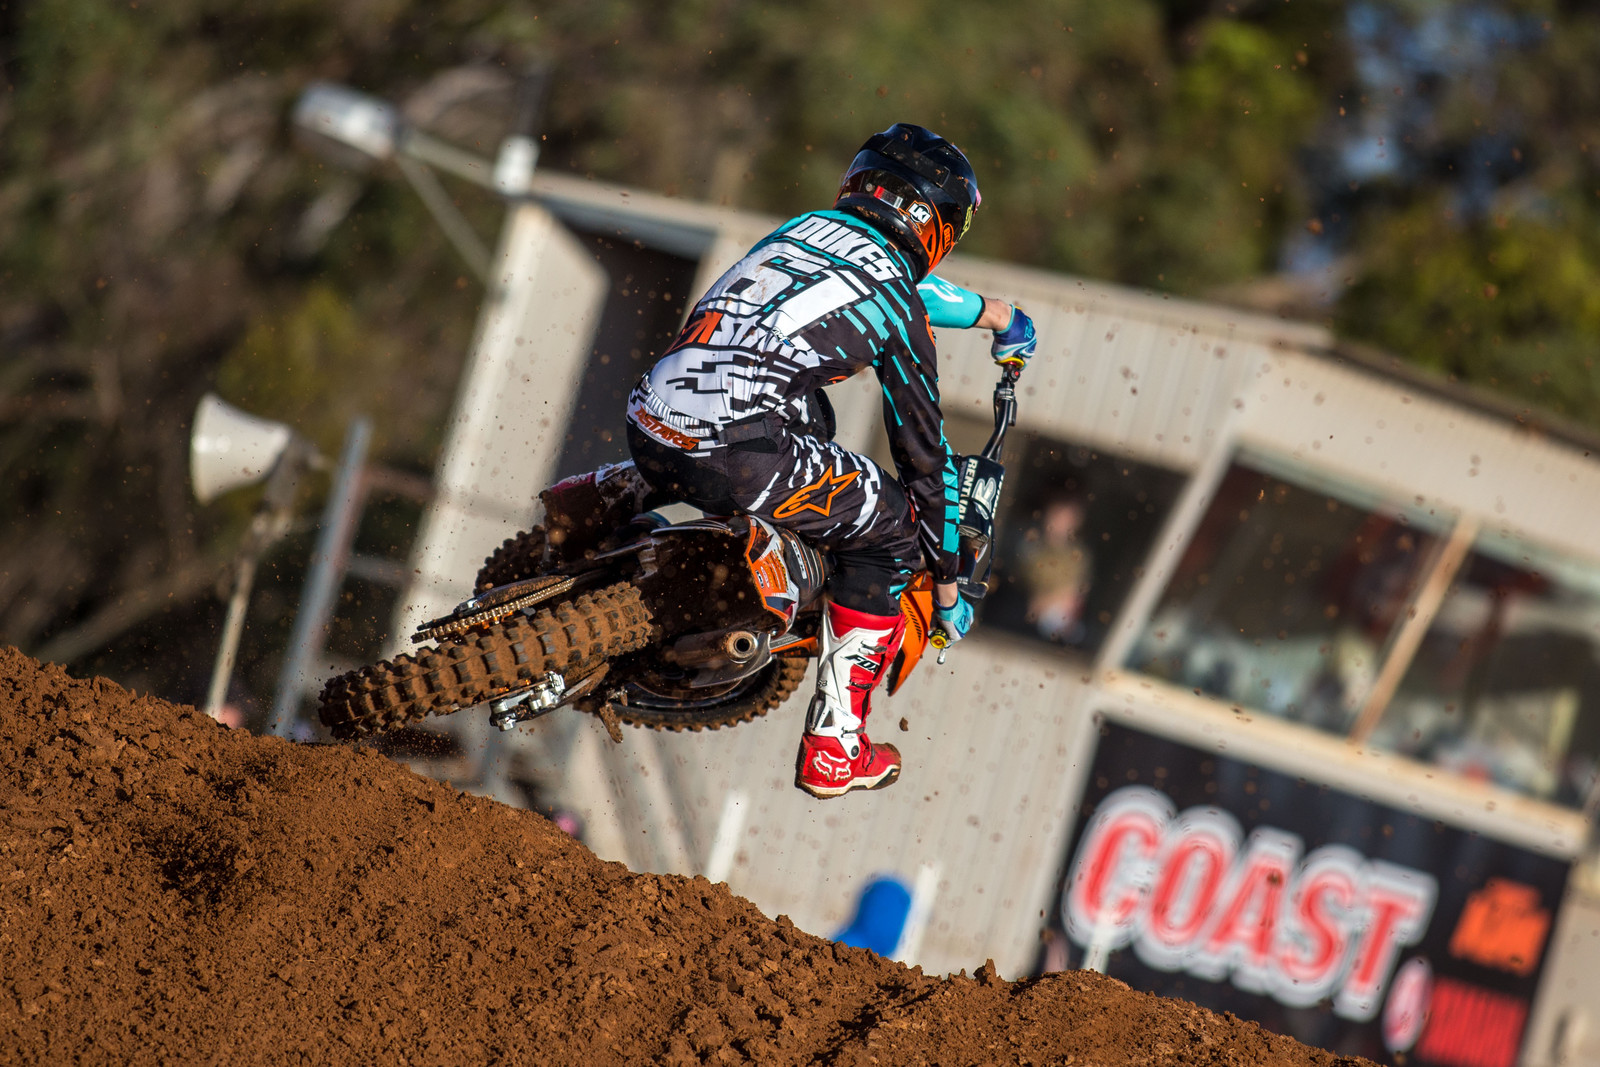 Elias Dukes - Australian Motul Mx Championships: Round 4, Murray Bridge - Motocross Pictures - Vital MX